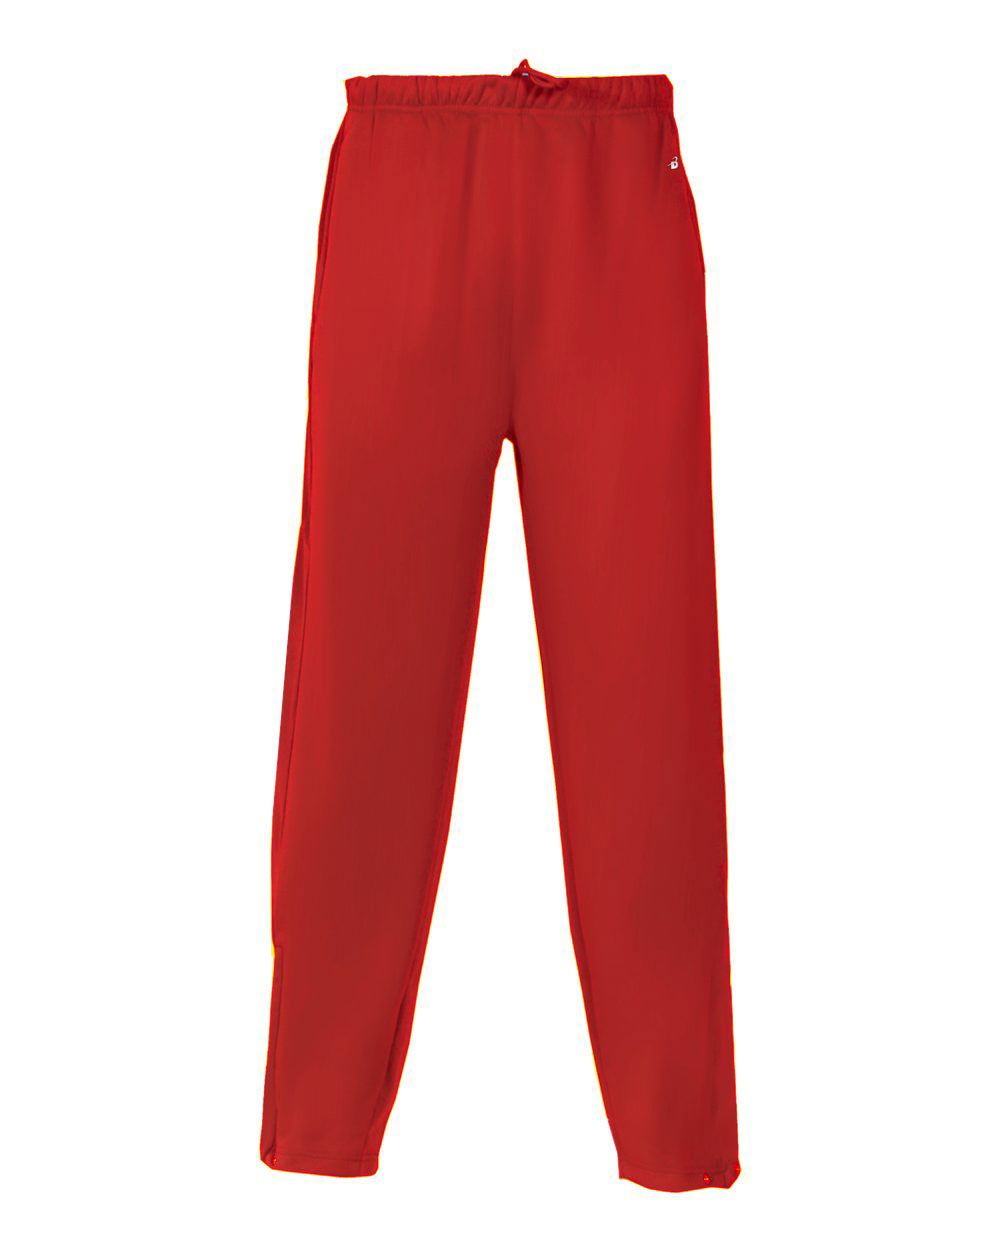 BT5 Fleece Pant